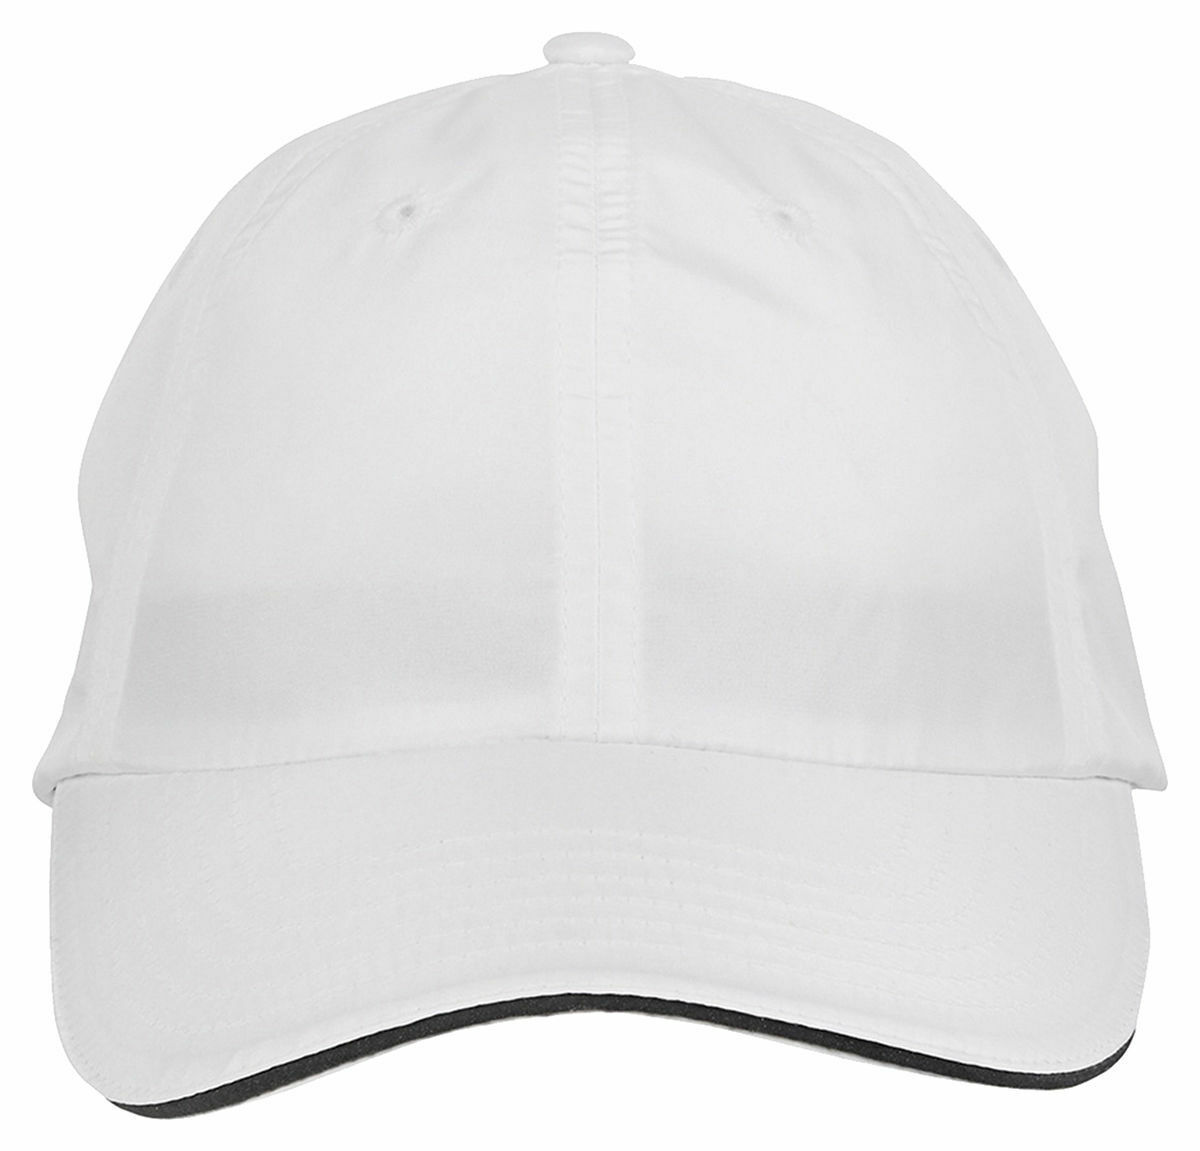 ddad136d8ae8a Ash City Men s Moisture Wicking Pitch Performance Six Panel Baseball Cap.  CE001